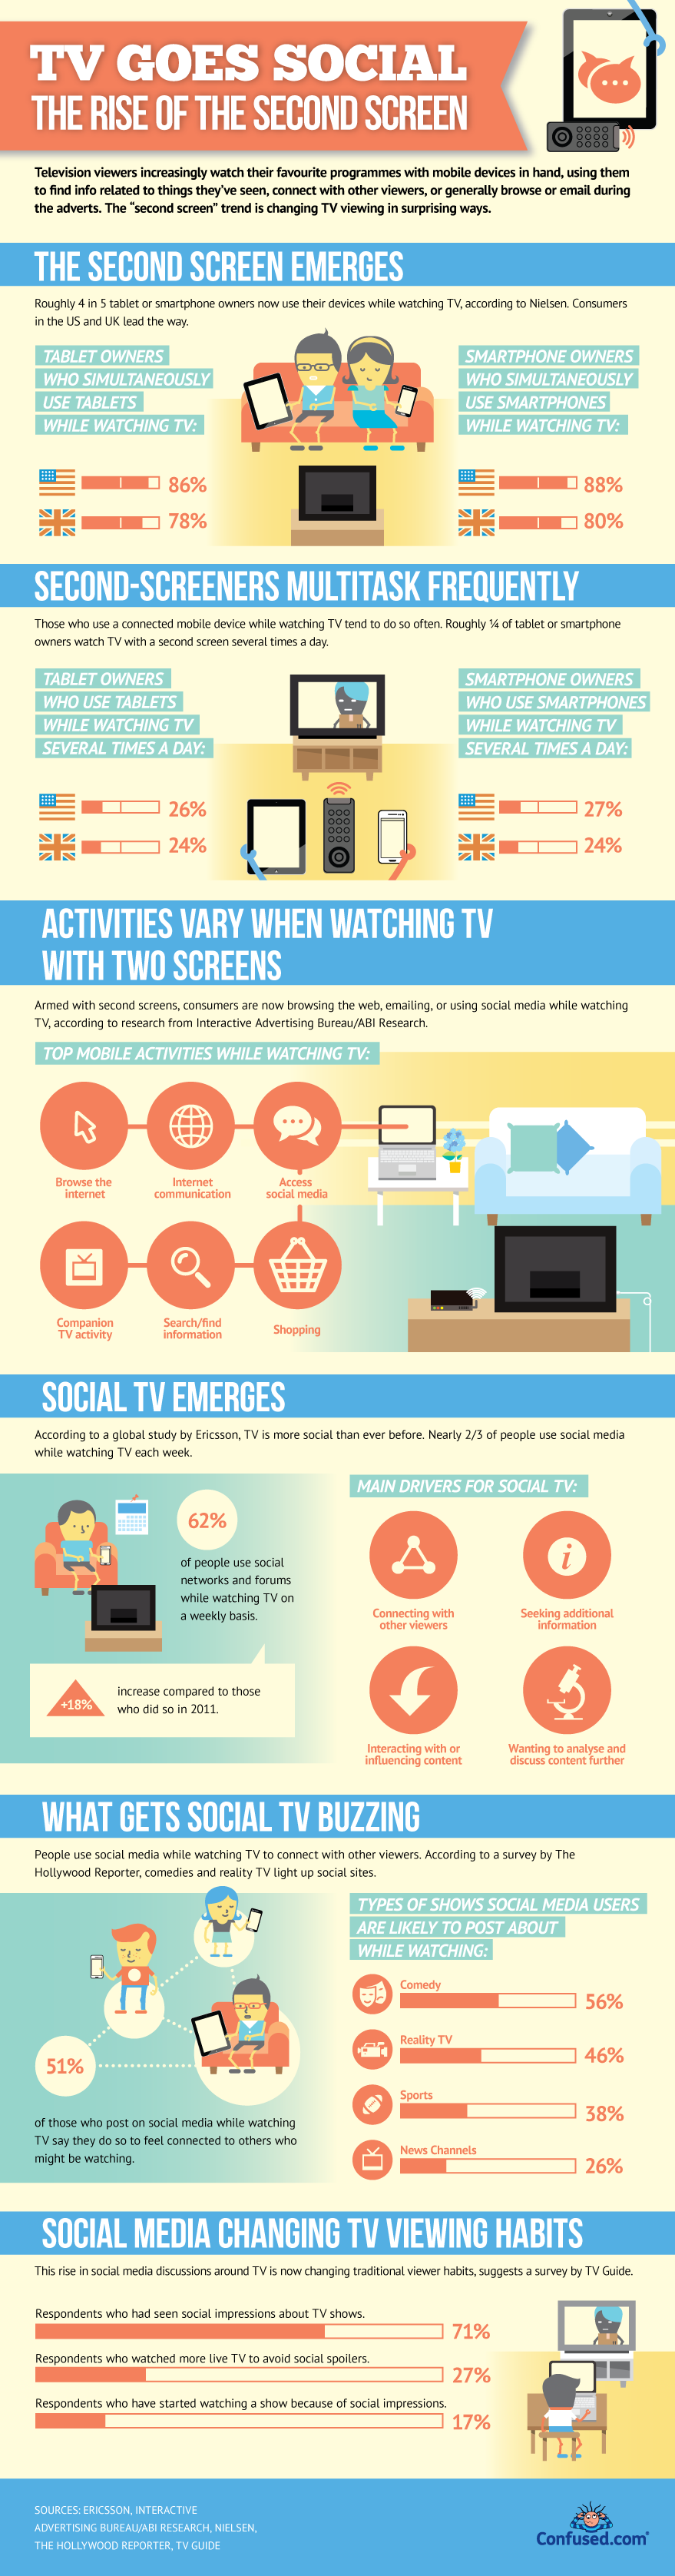 tv-goes-social-the-rise-of-the-second-screen